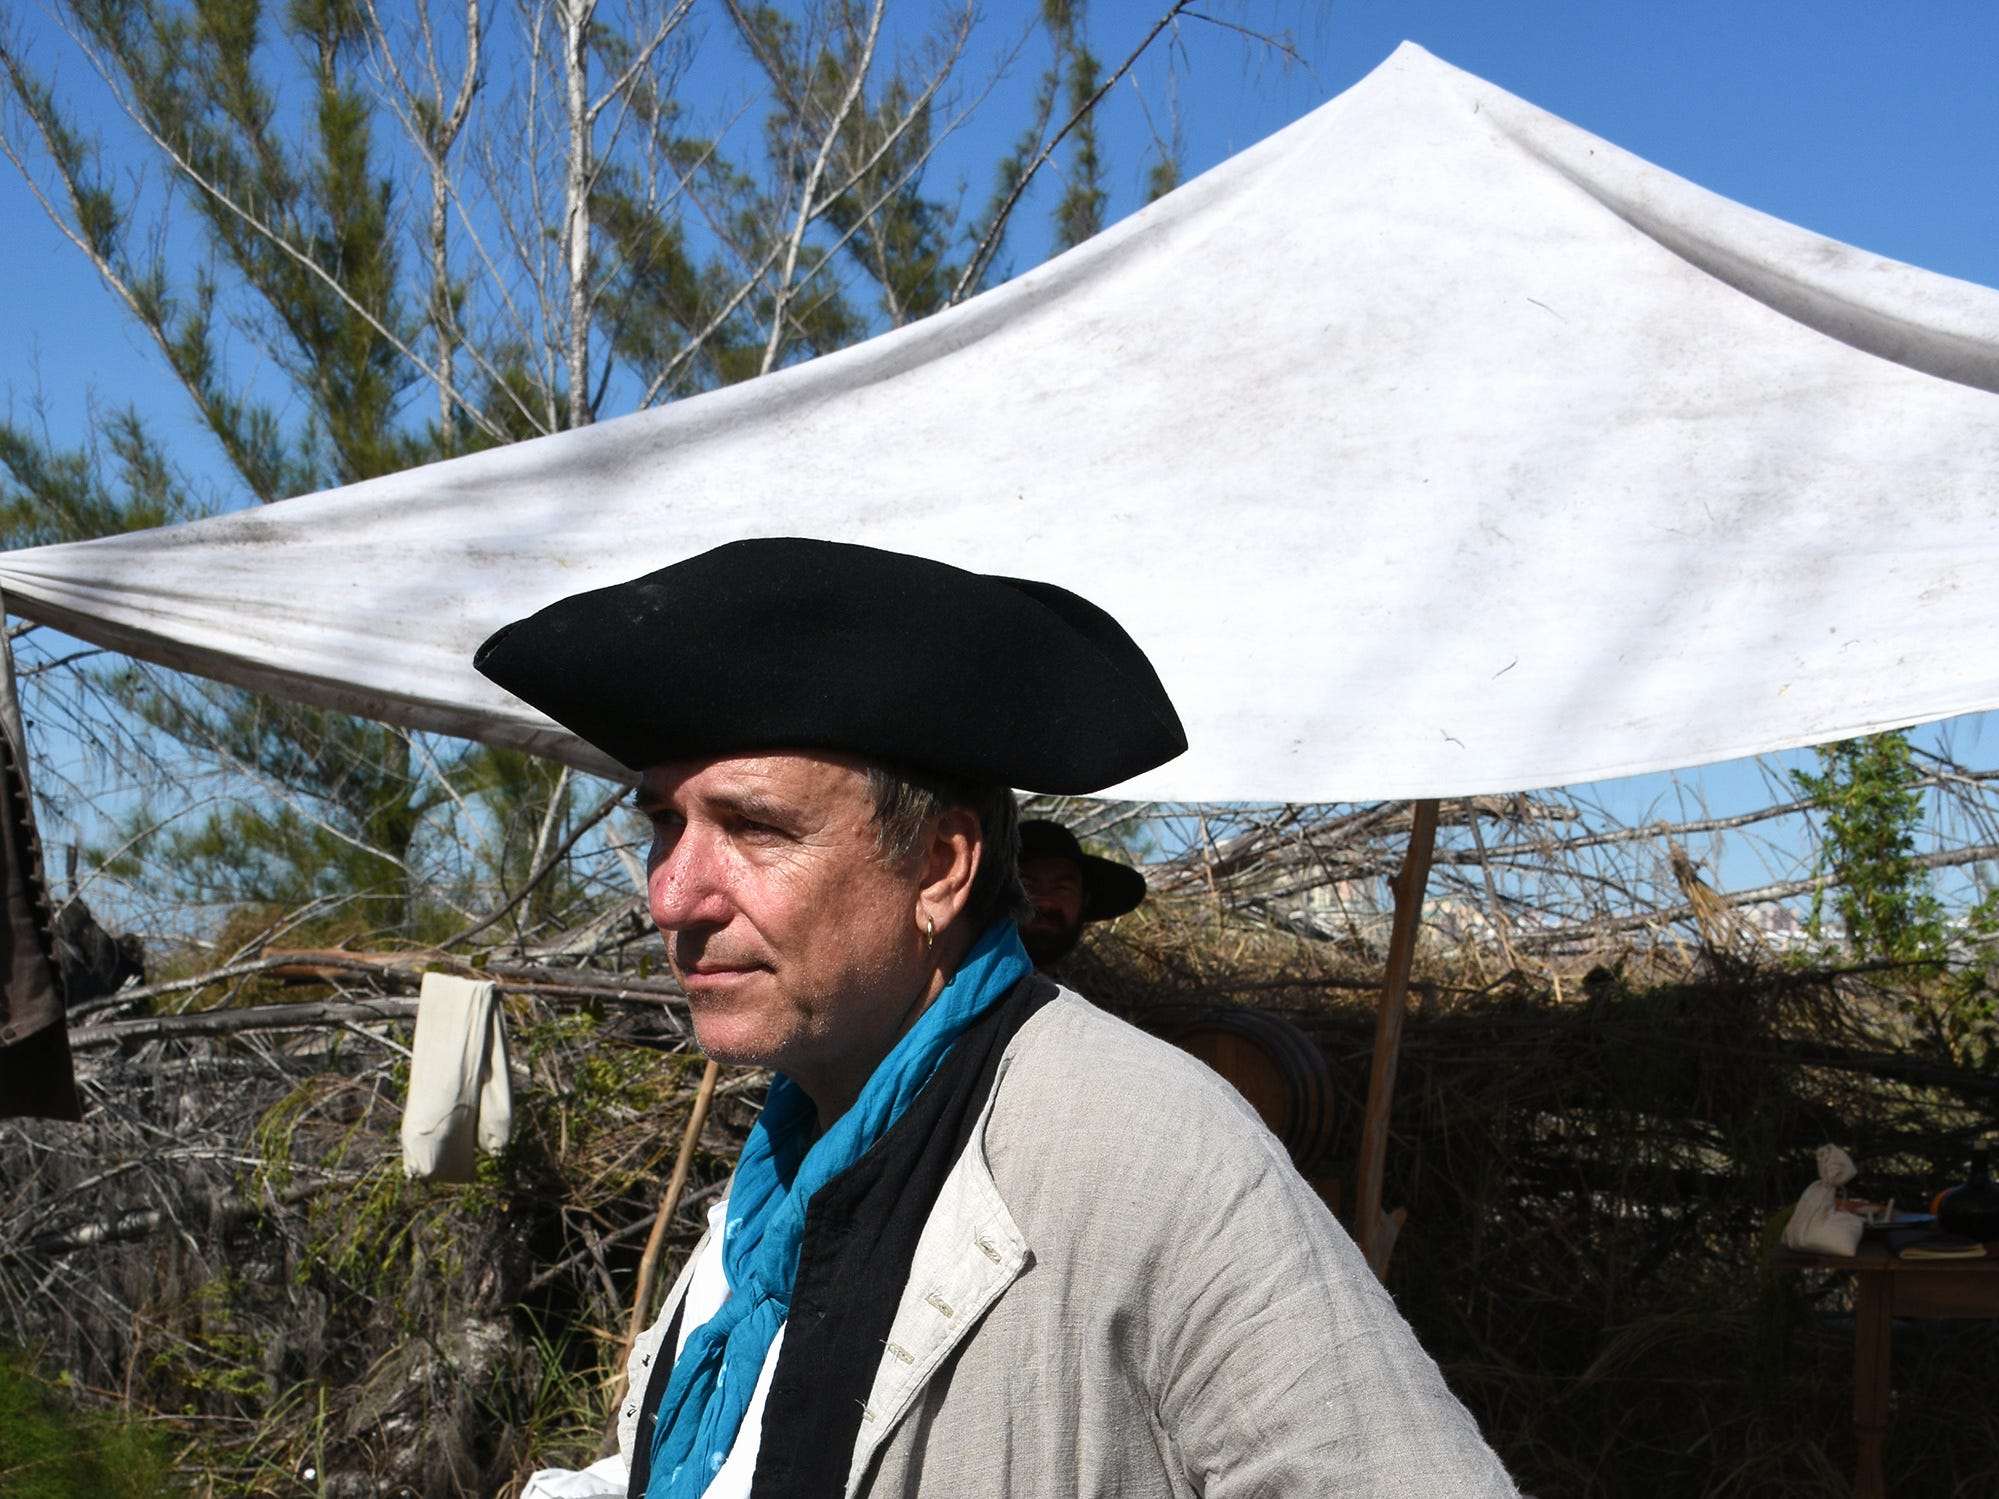 Ken Tyndell is an Orlando ABC news anchor in real life.  A group of historical reenactors dedicated to living the life of 18th century swashbucklers set up a pirate camp on Kice Island, across Caxambas Pass from Cape Marco, over the weekend.